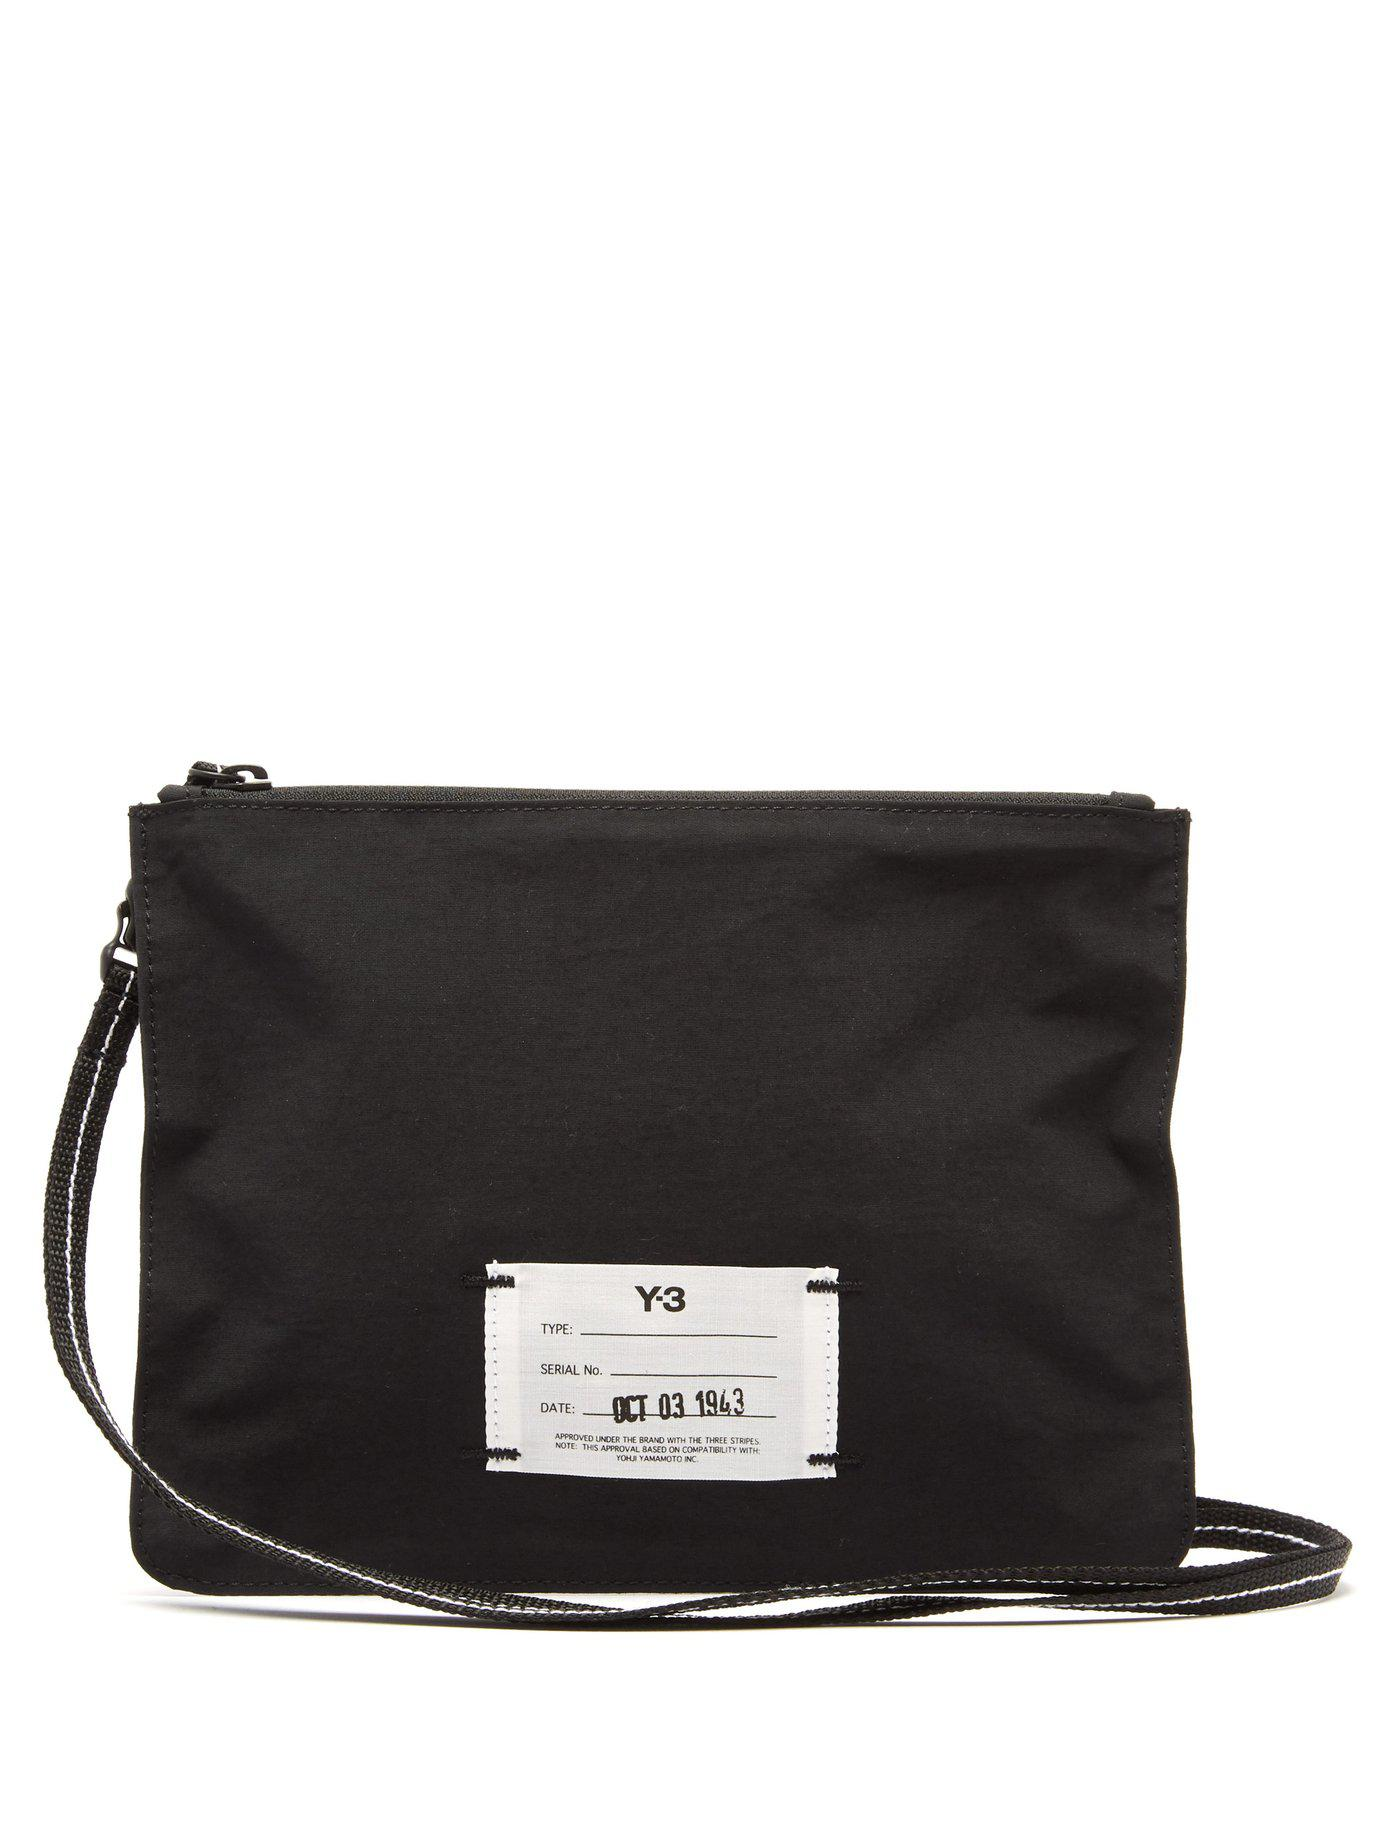 Lyst - Y-3 Technical Pouch Cross Body Bag in Black for Men 7eede1d1acd23